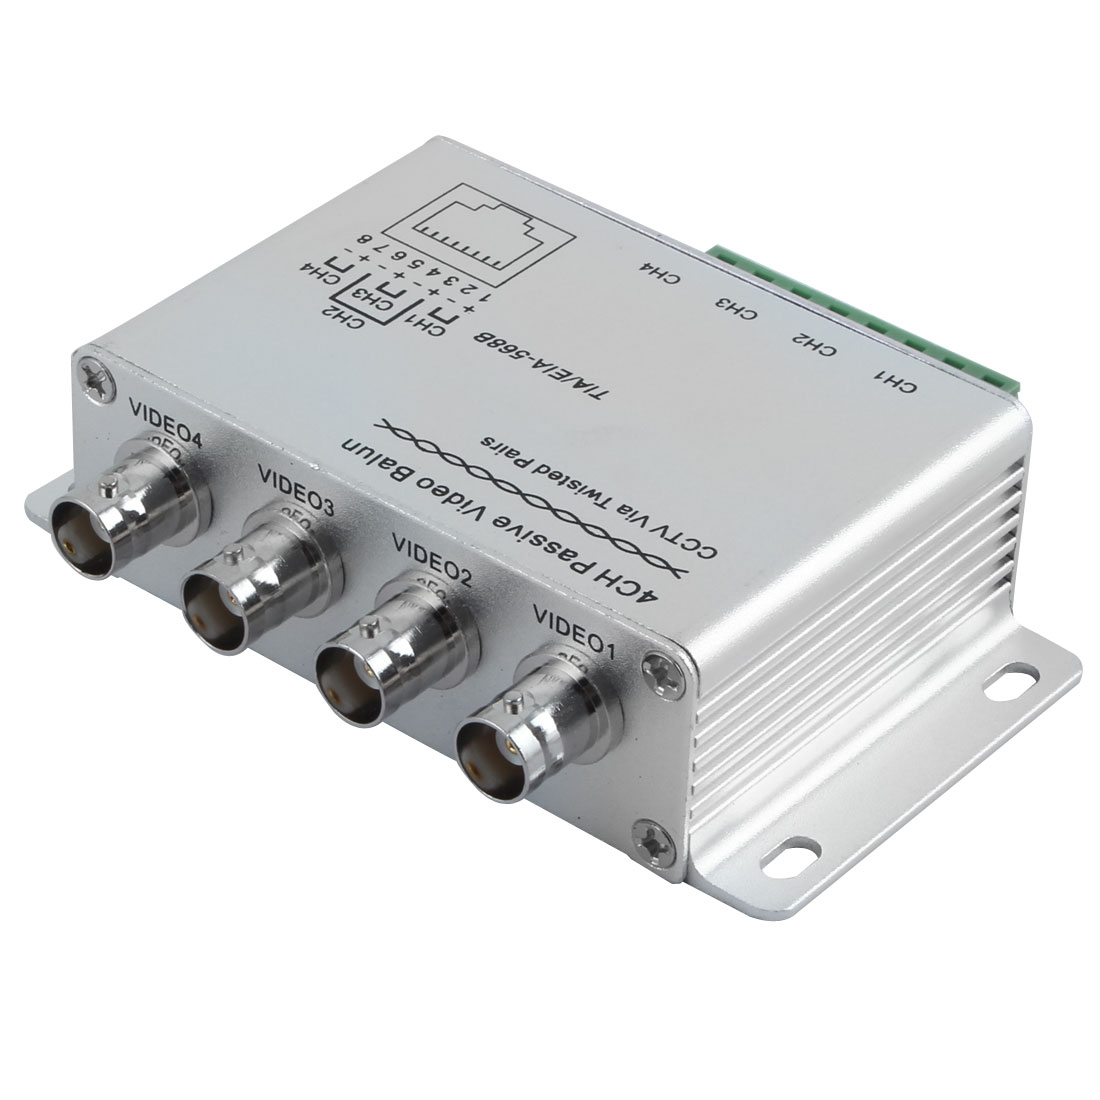 UTP 4 Channel Passive Video Balun Transceiver